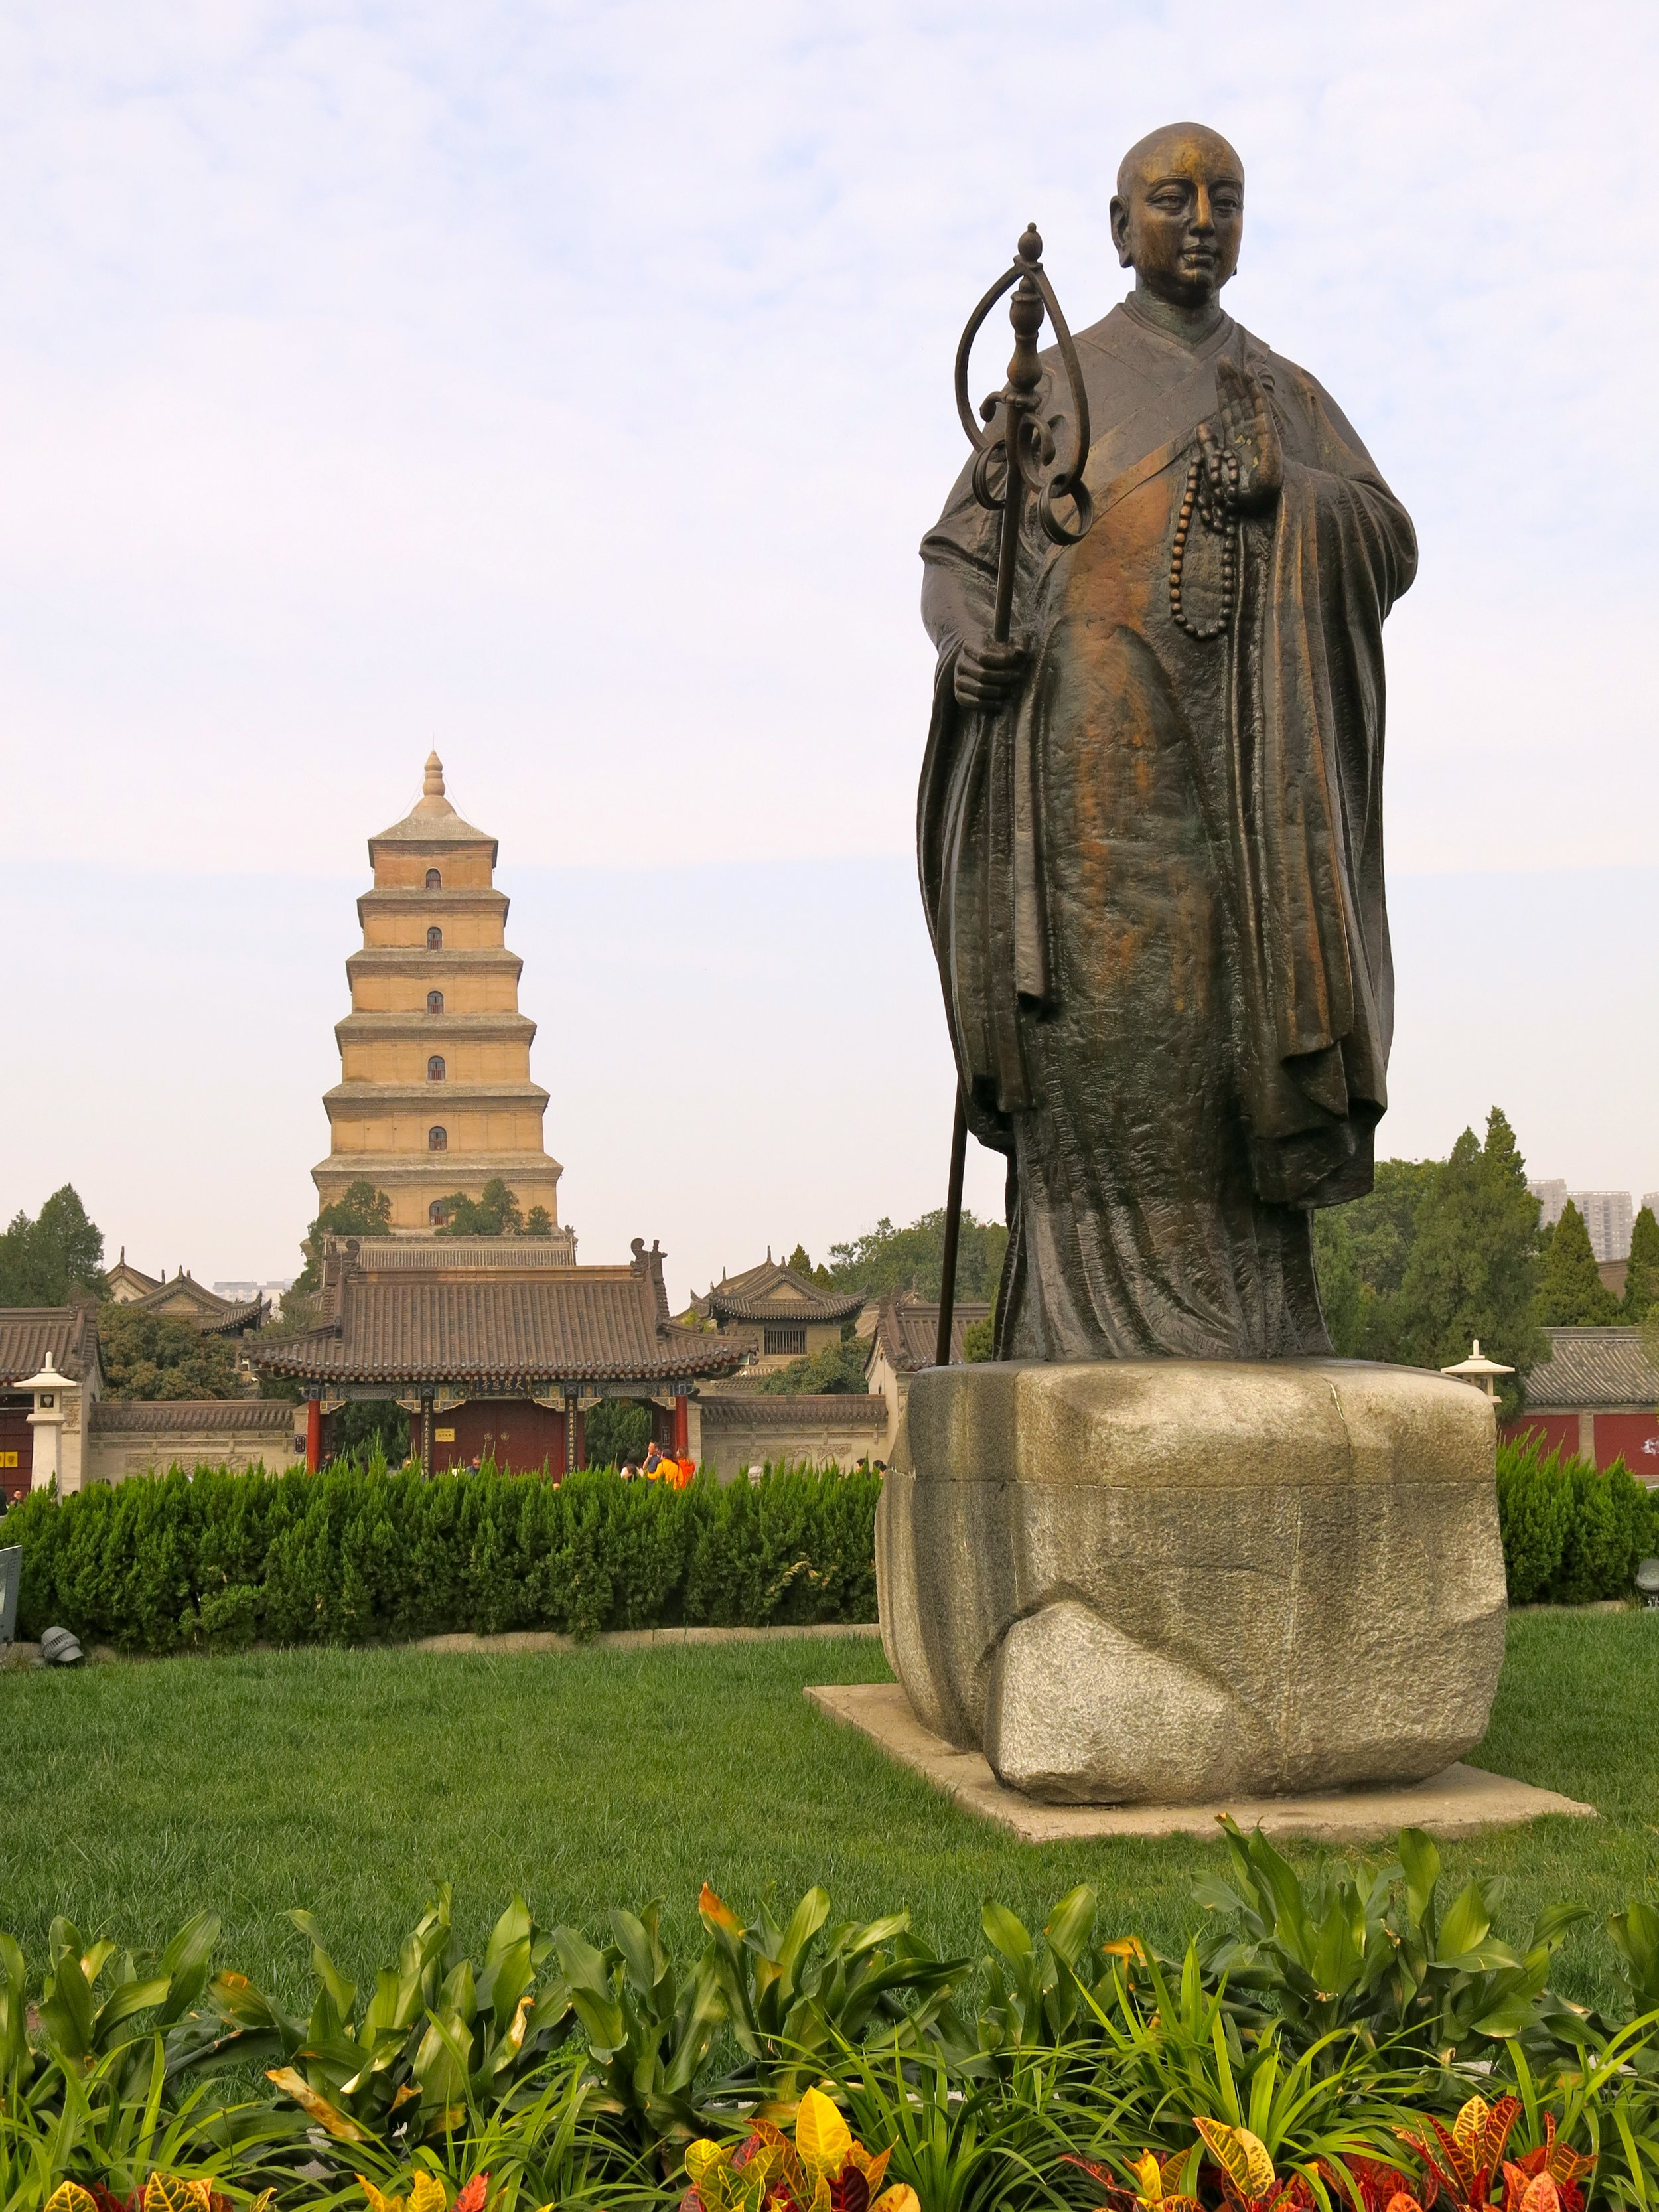 The Wild Goose Pagoda with the statue of monk Xuanzang